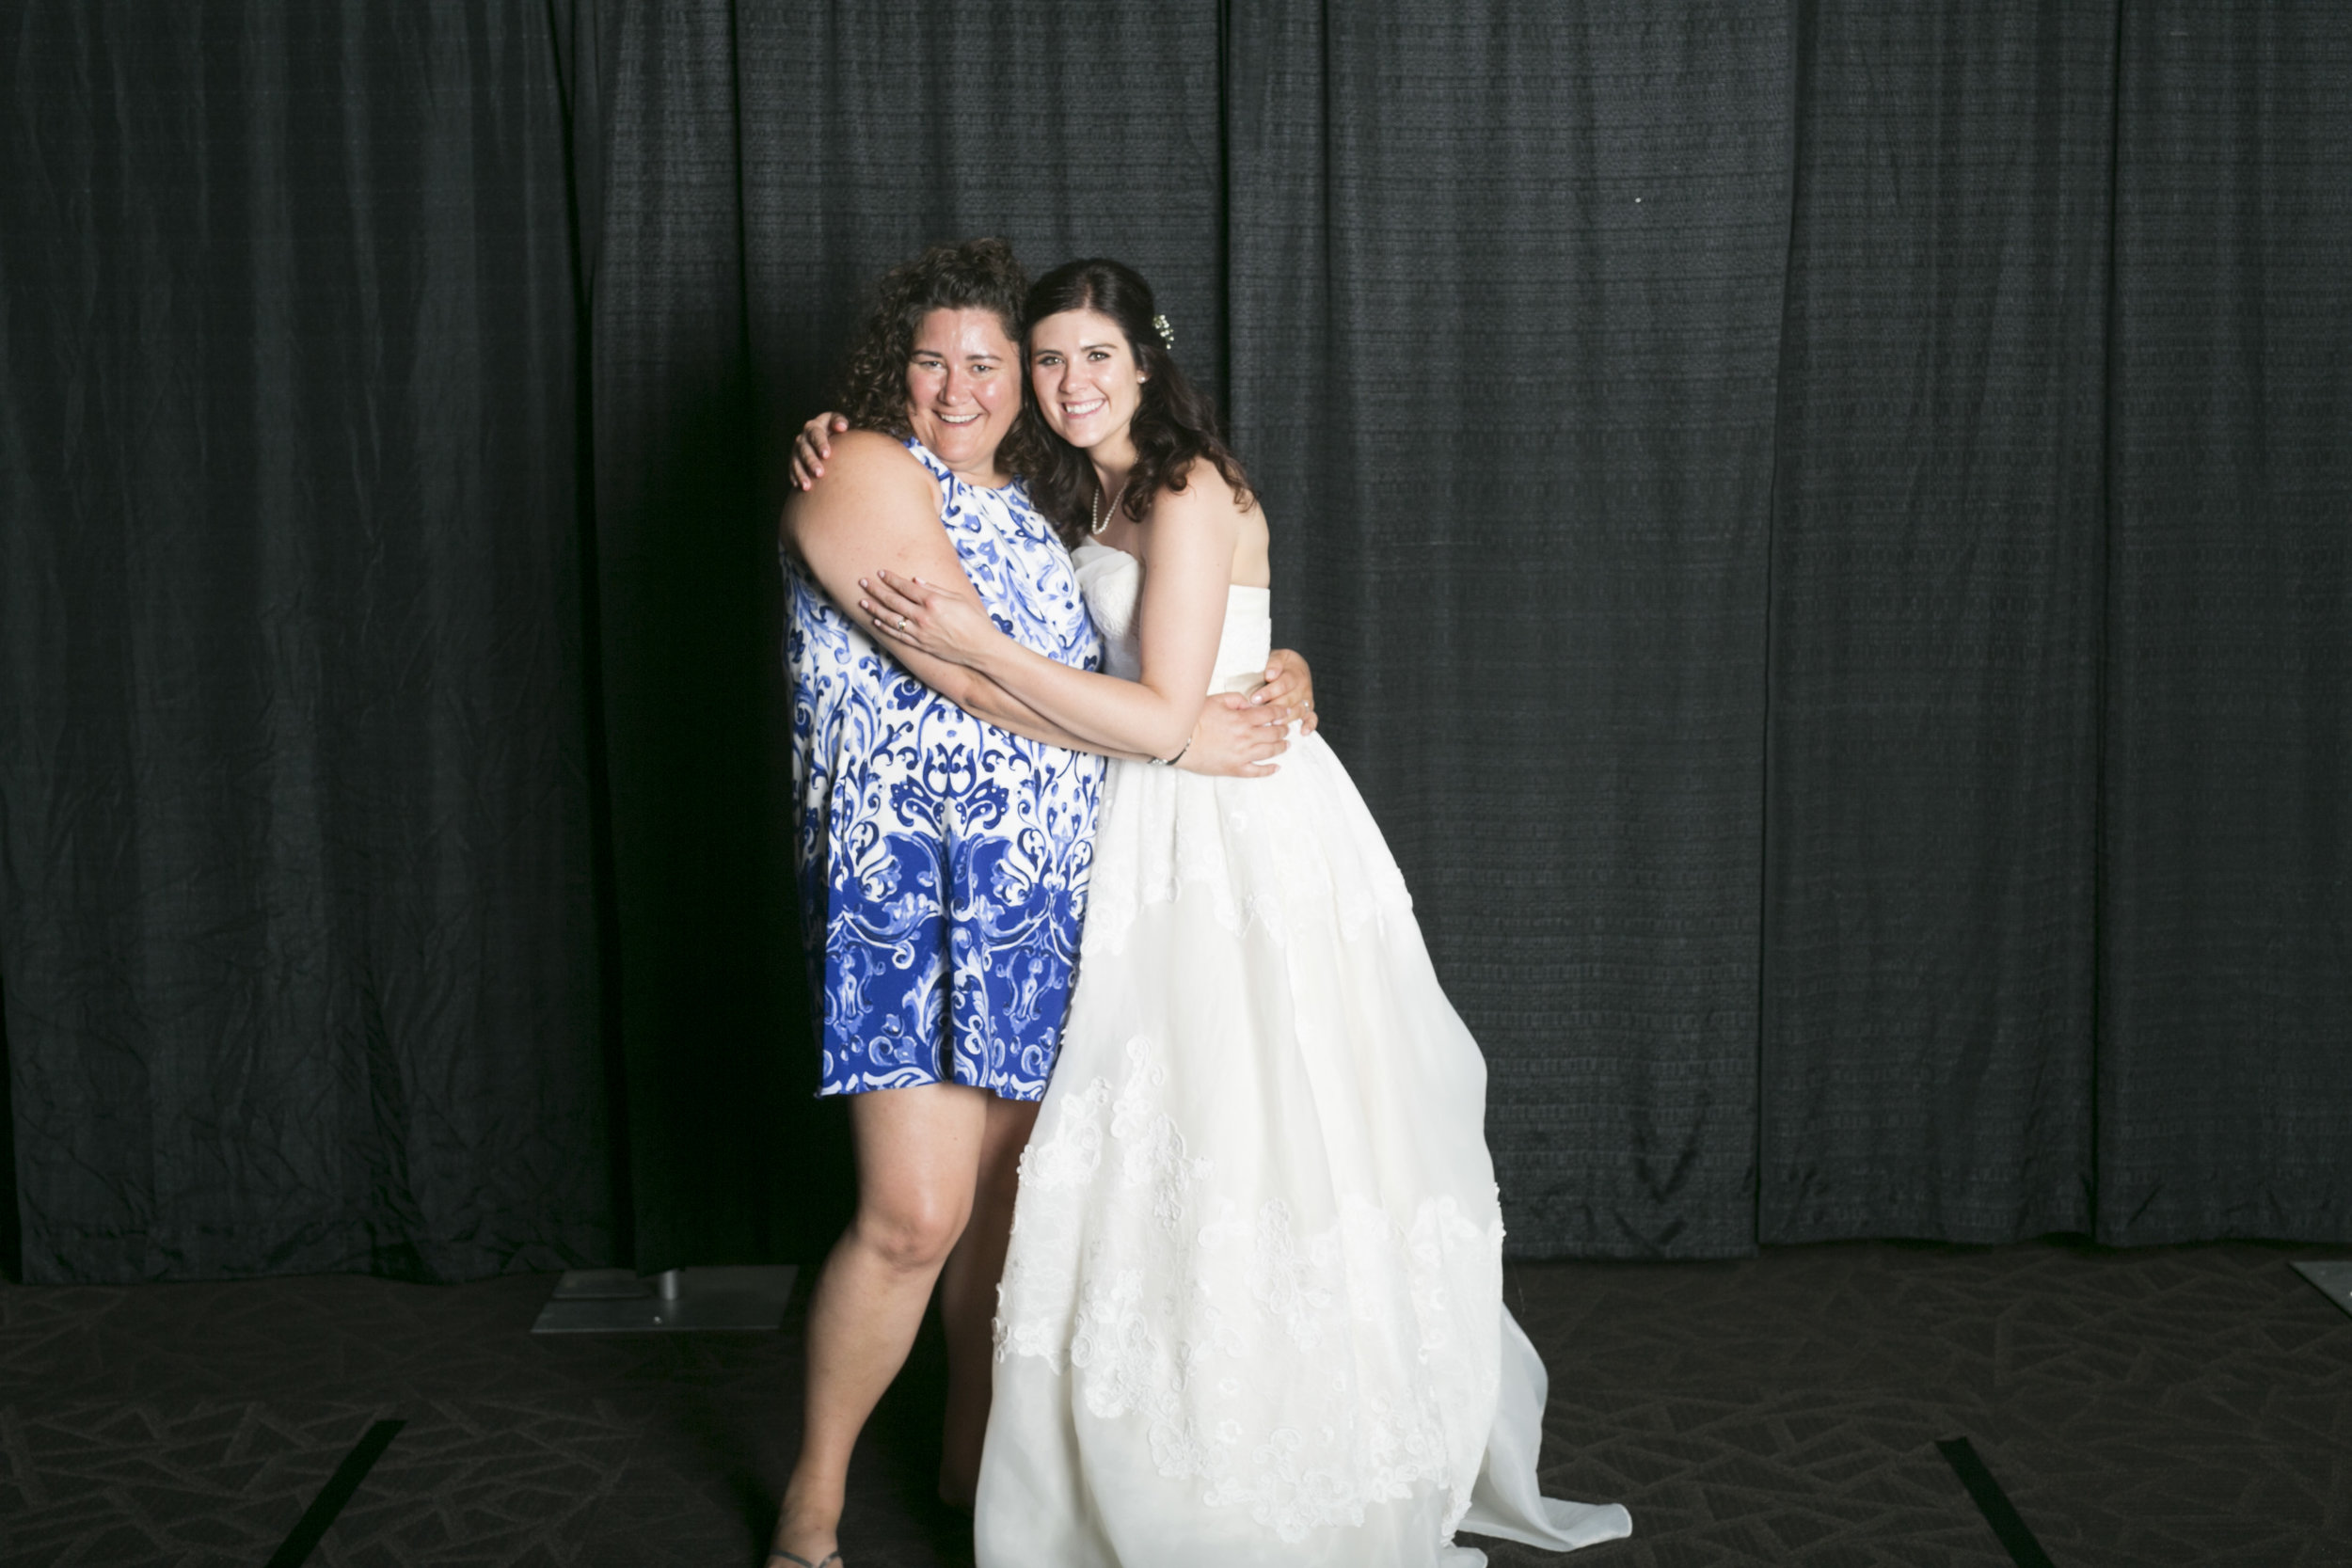 wedding photo booth-59.jpg